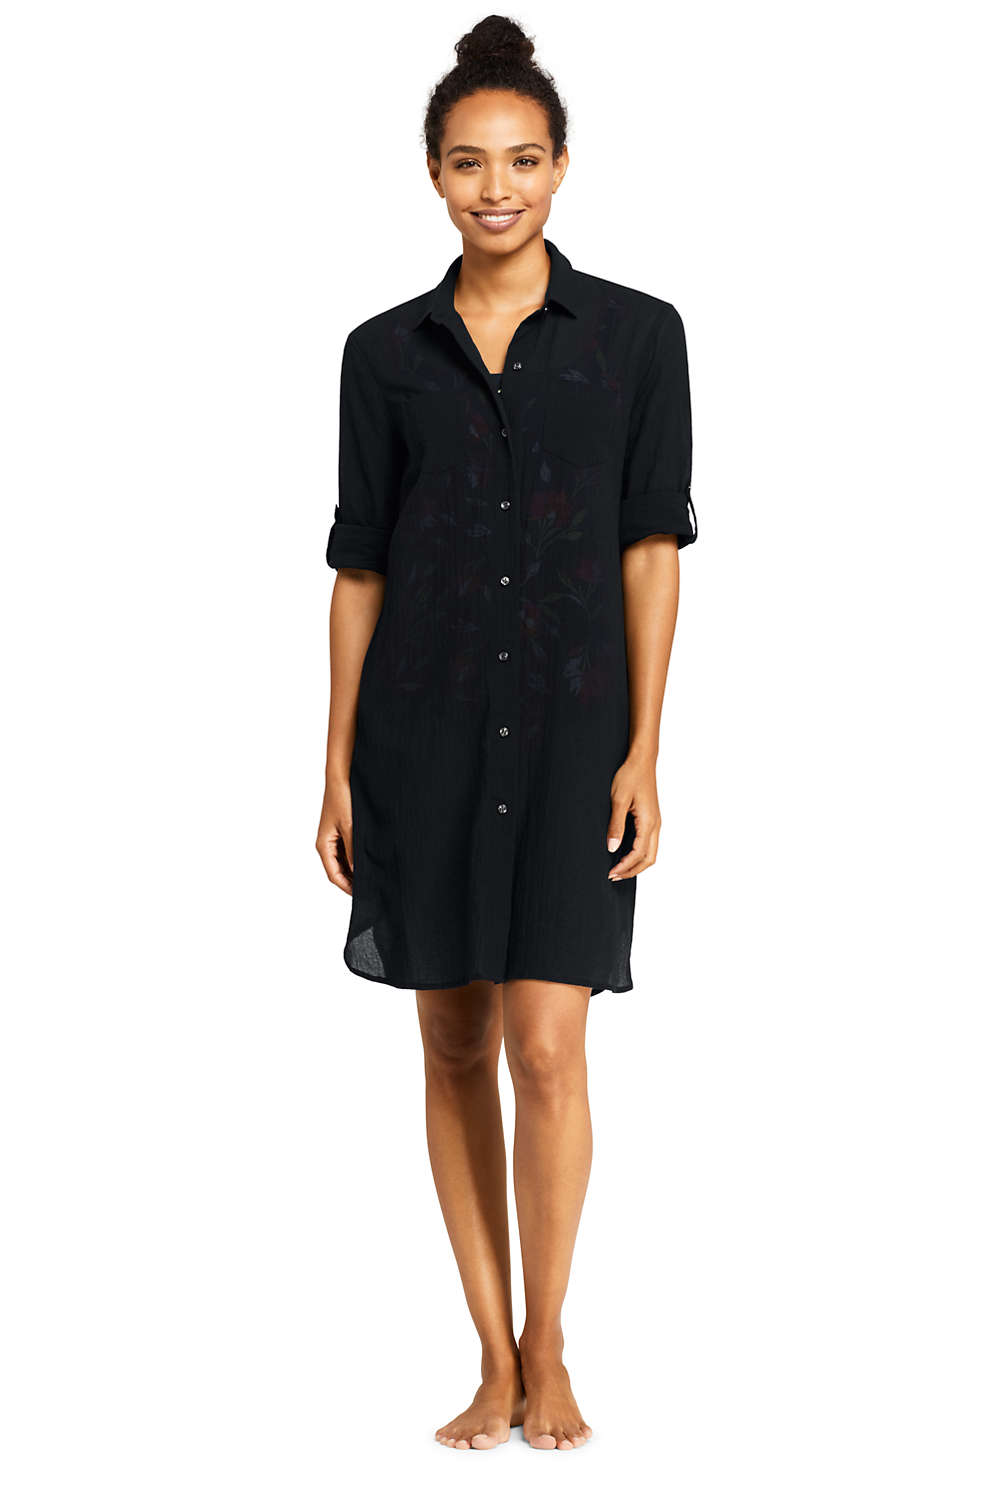 0a28a0958c6 Women's Cotton Button Down Shirt Dress Swim Cover-up from Lands' End